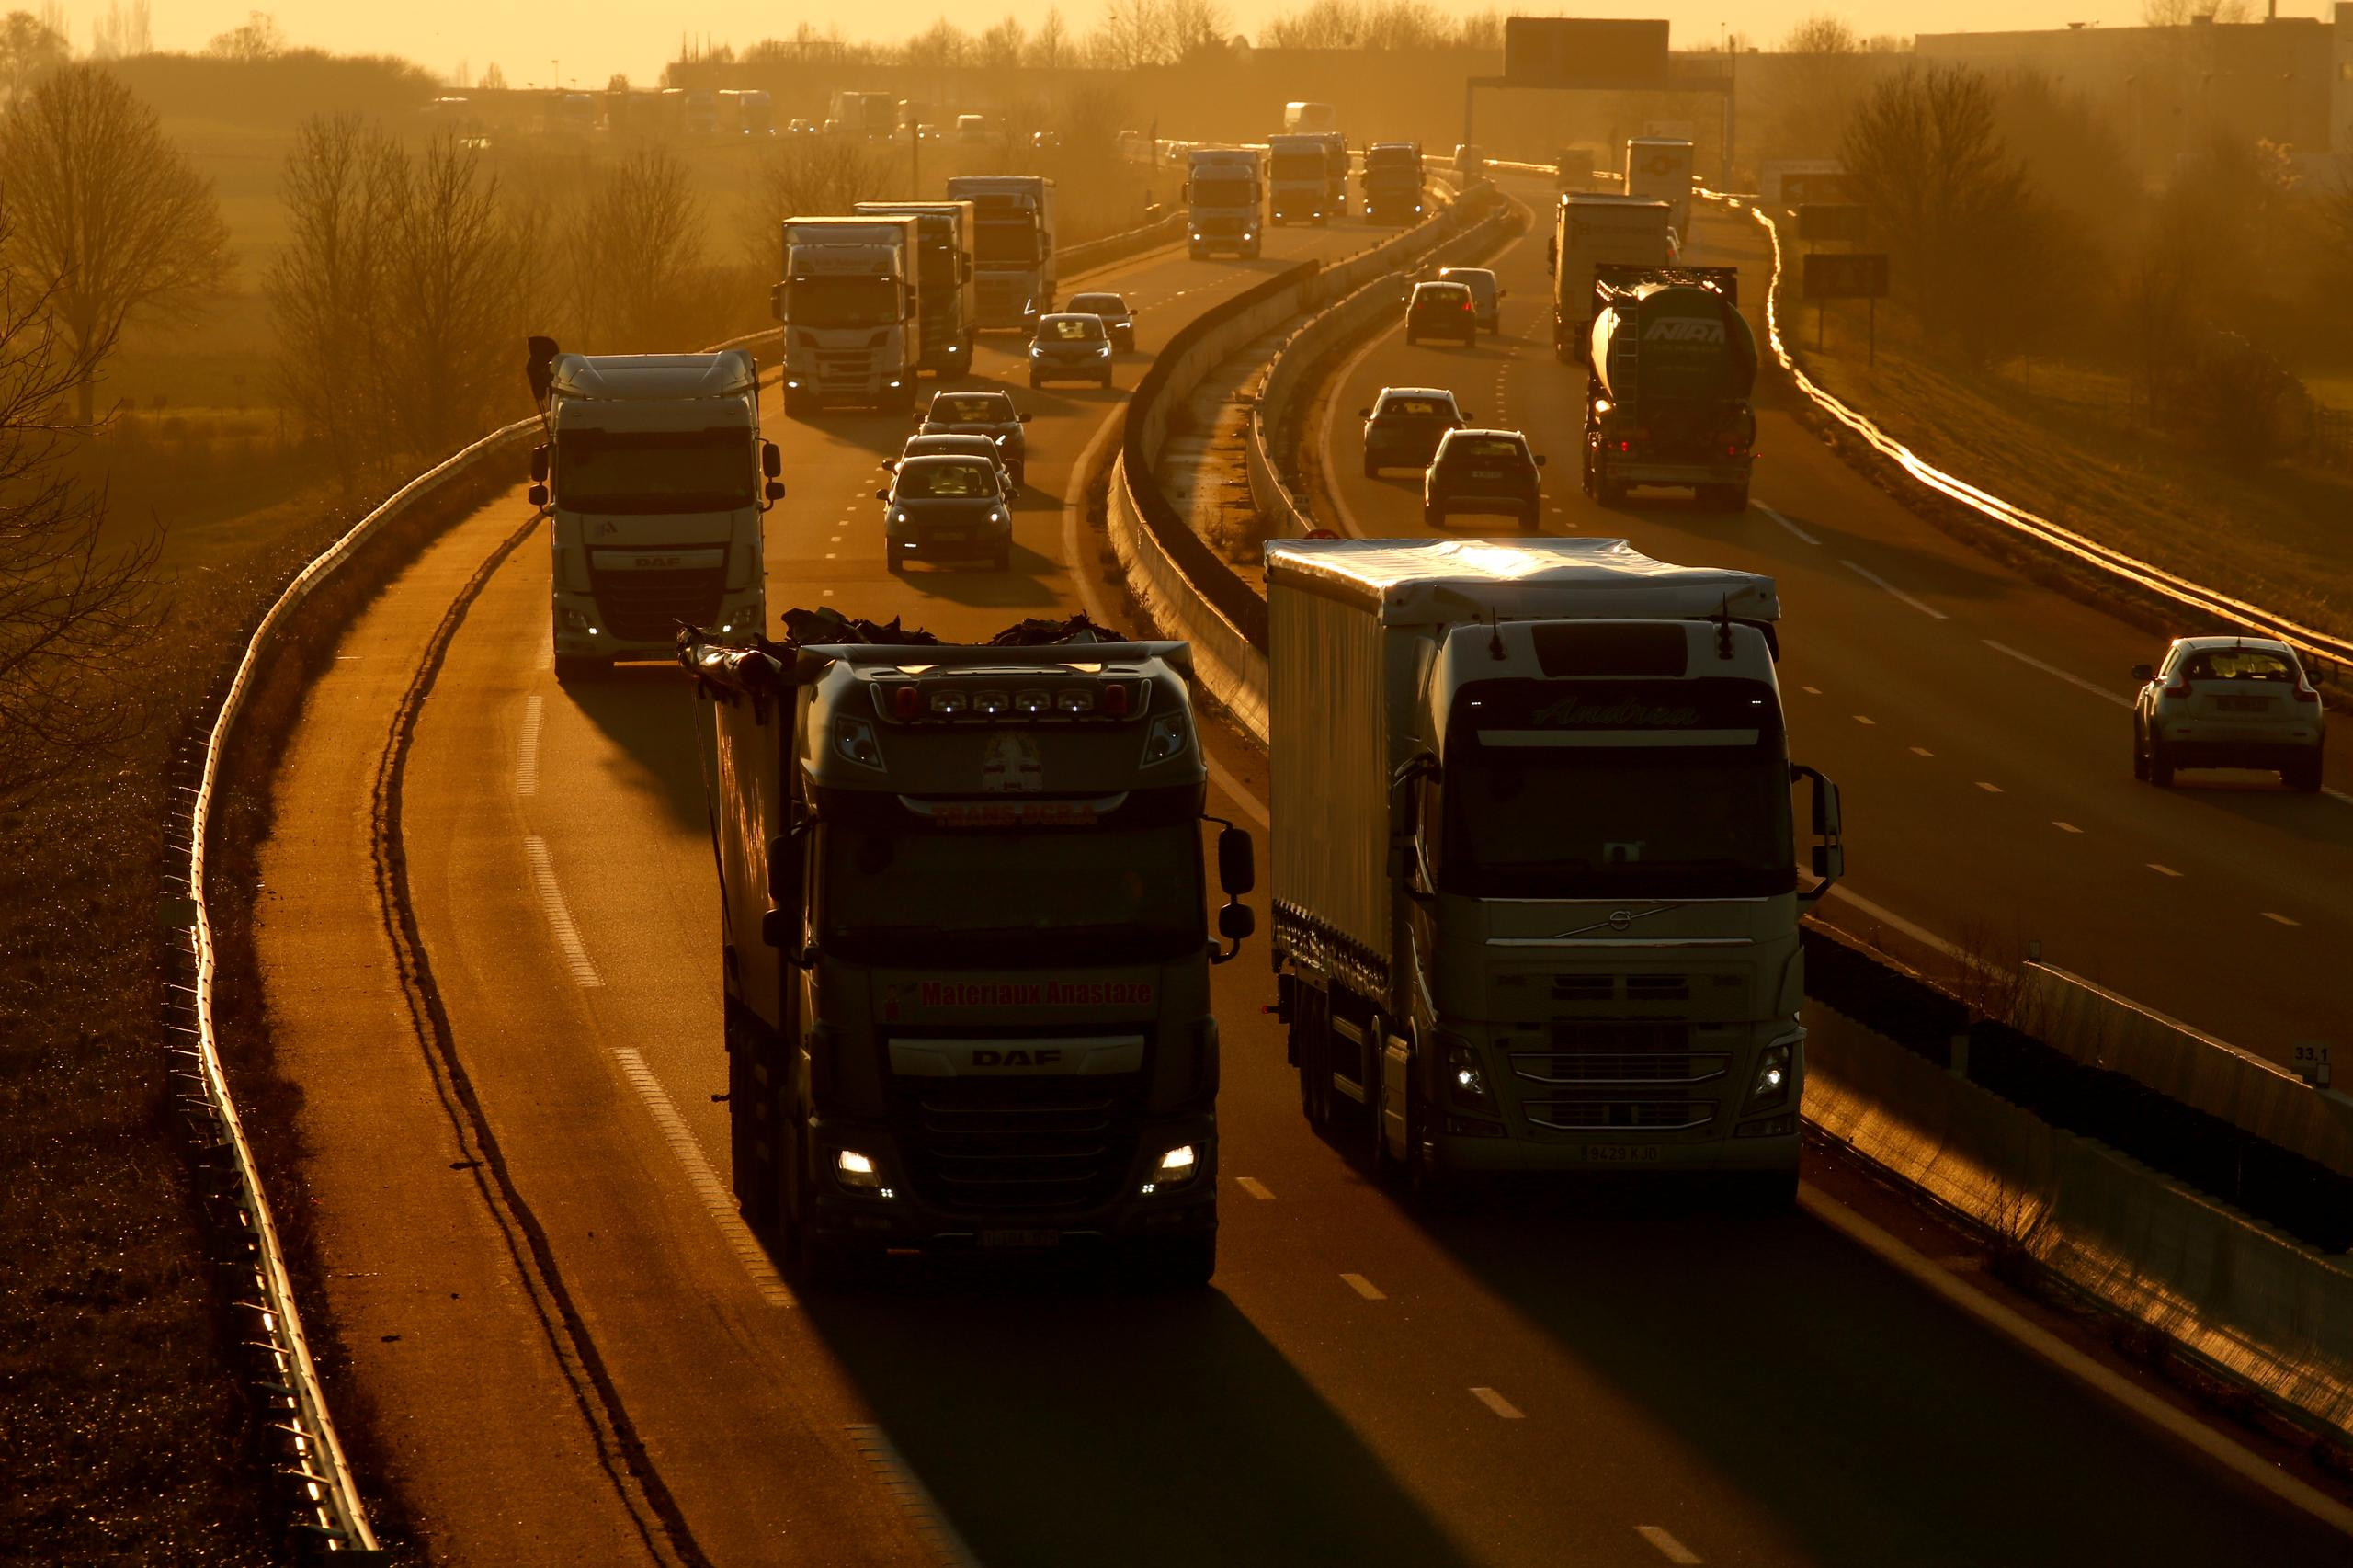 FILE PHOTO: Trucks and cars drive on the Paris-Bruxelles highway during sunset in Tilloy-lez-Cambrai, France, December 4, 2019. REUTERS/Pascal Rossignol/File Photo